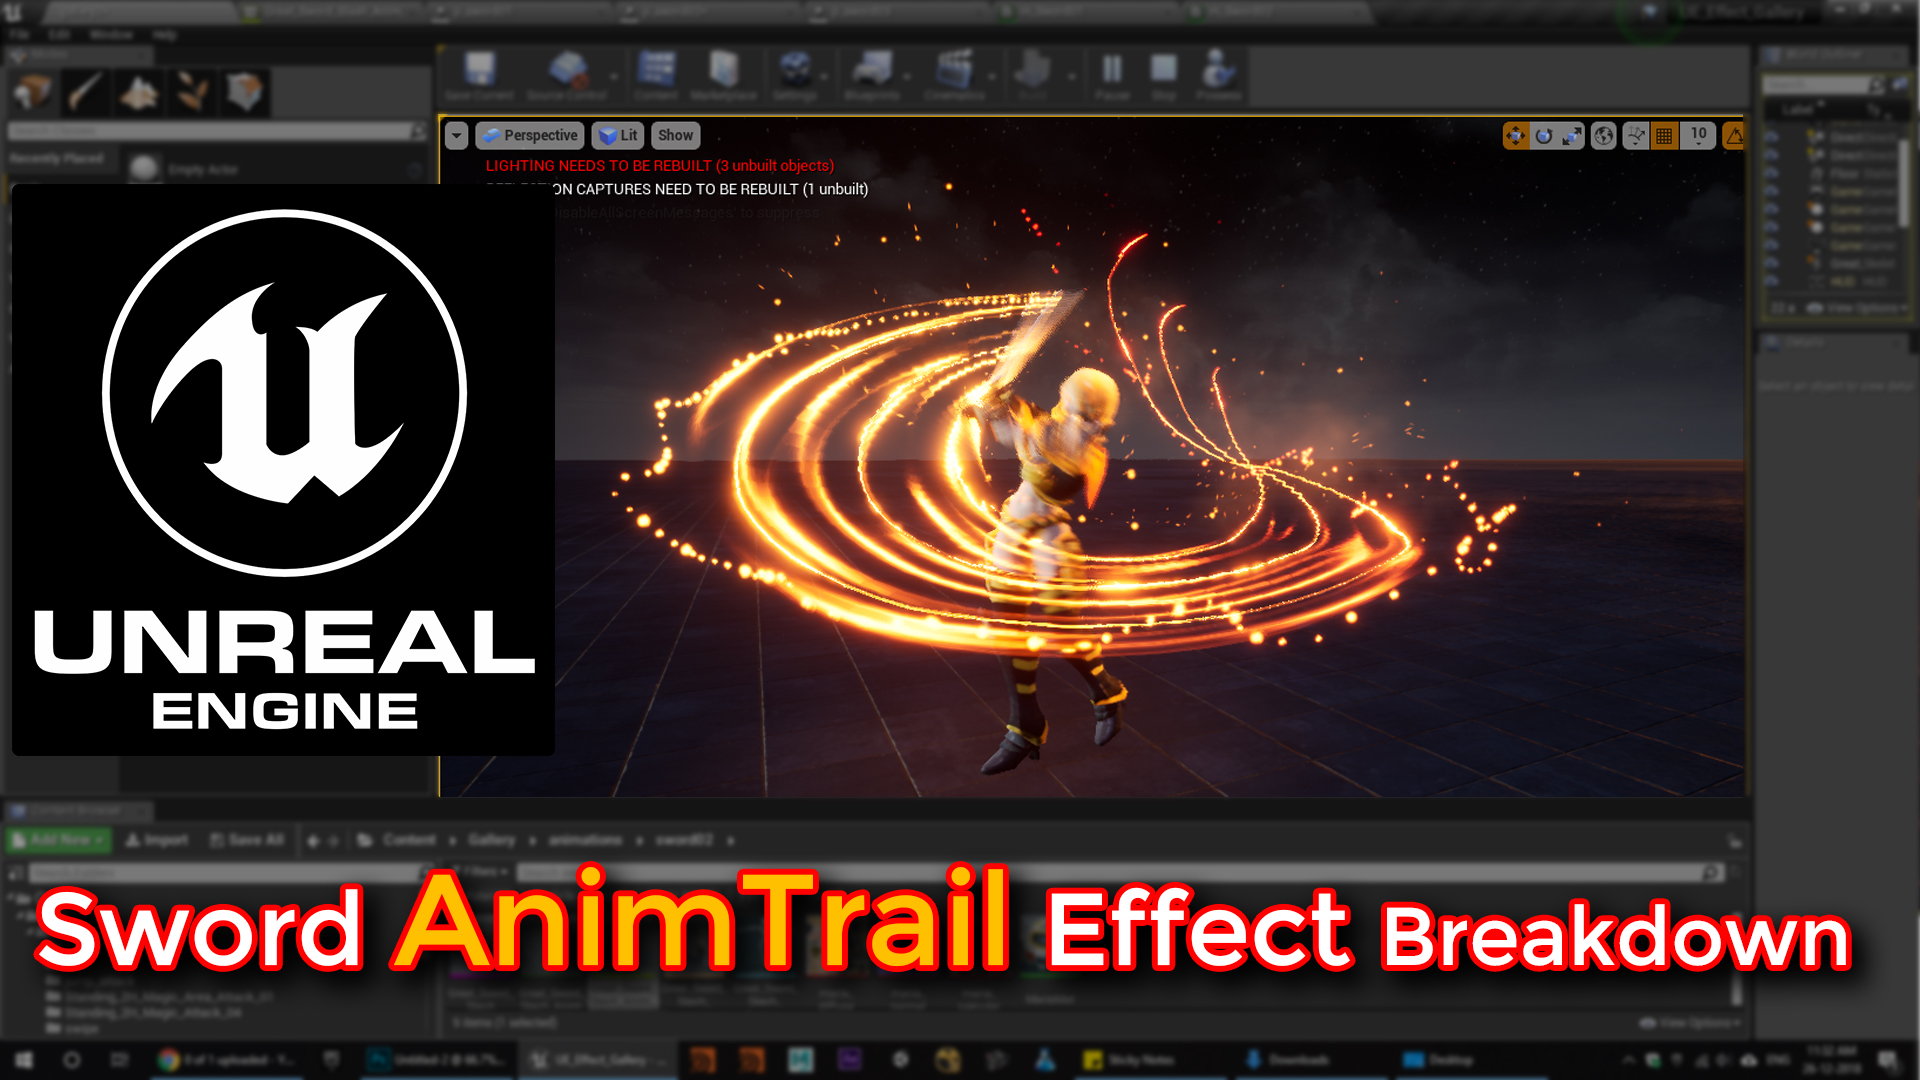 Unreal Engine | Sword AnimTrail Effect Breakdown | CGHOW